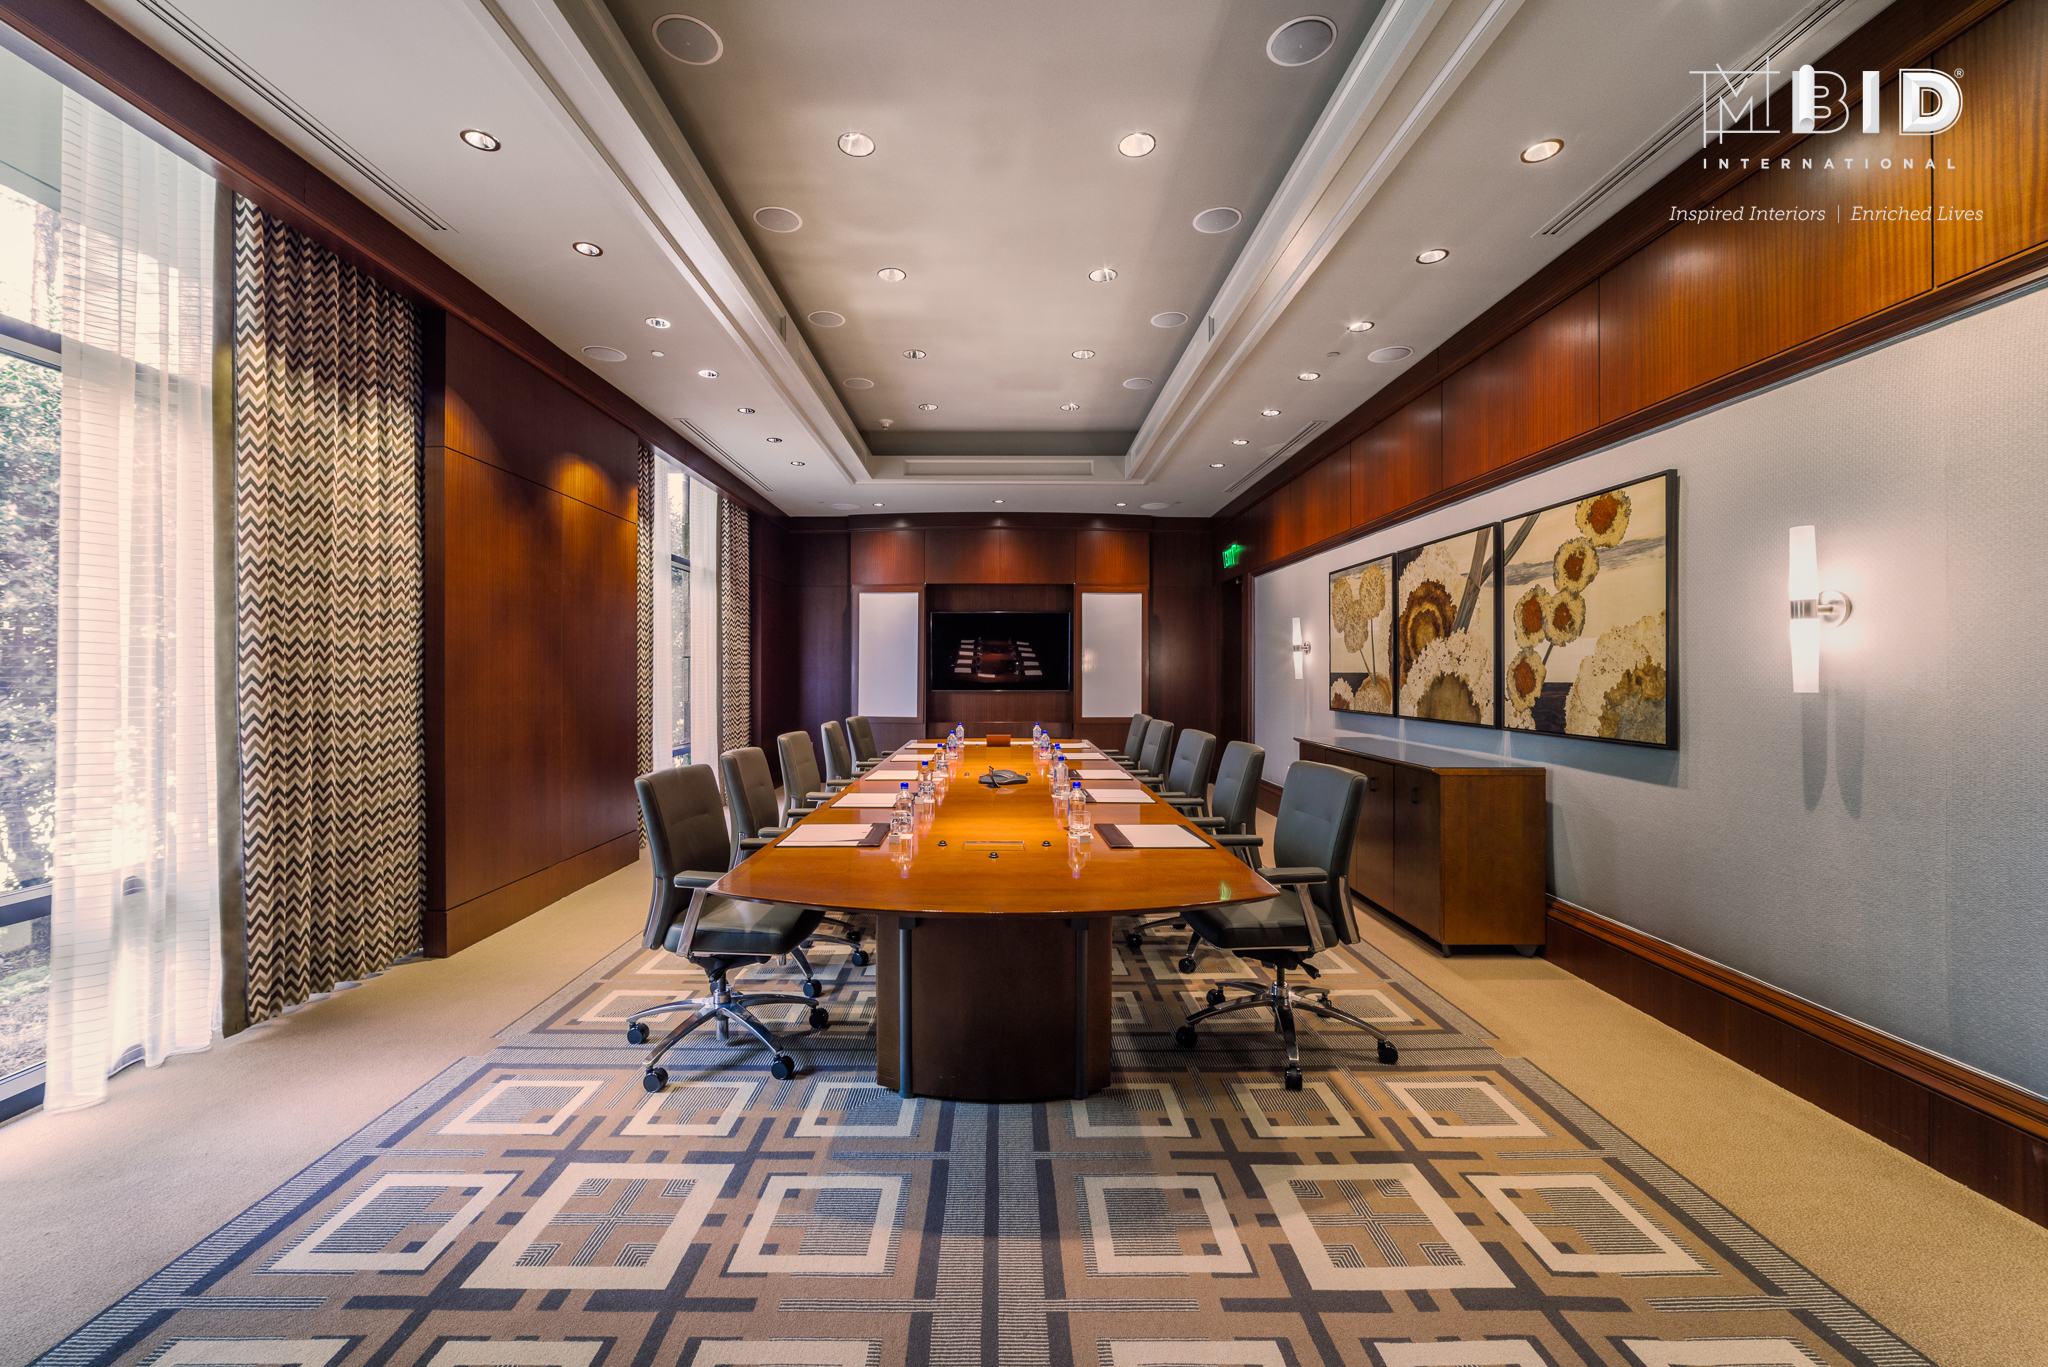 Executive Boardroom Interior Design North Carolina Mbid International